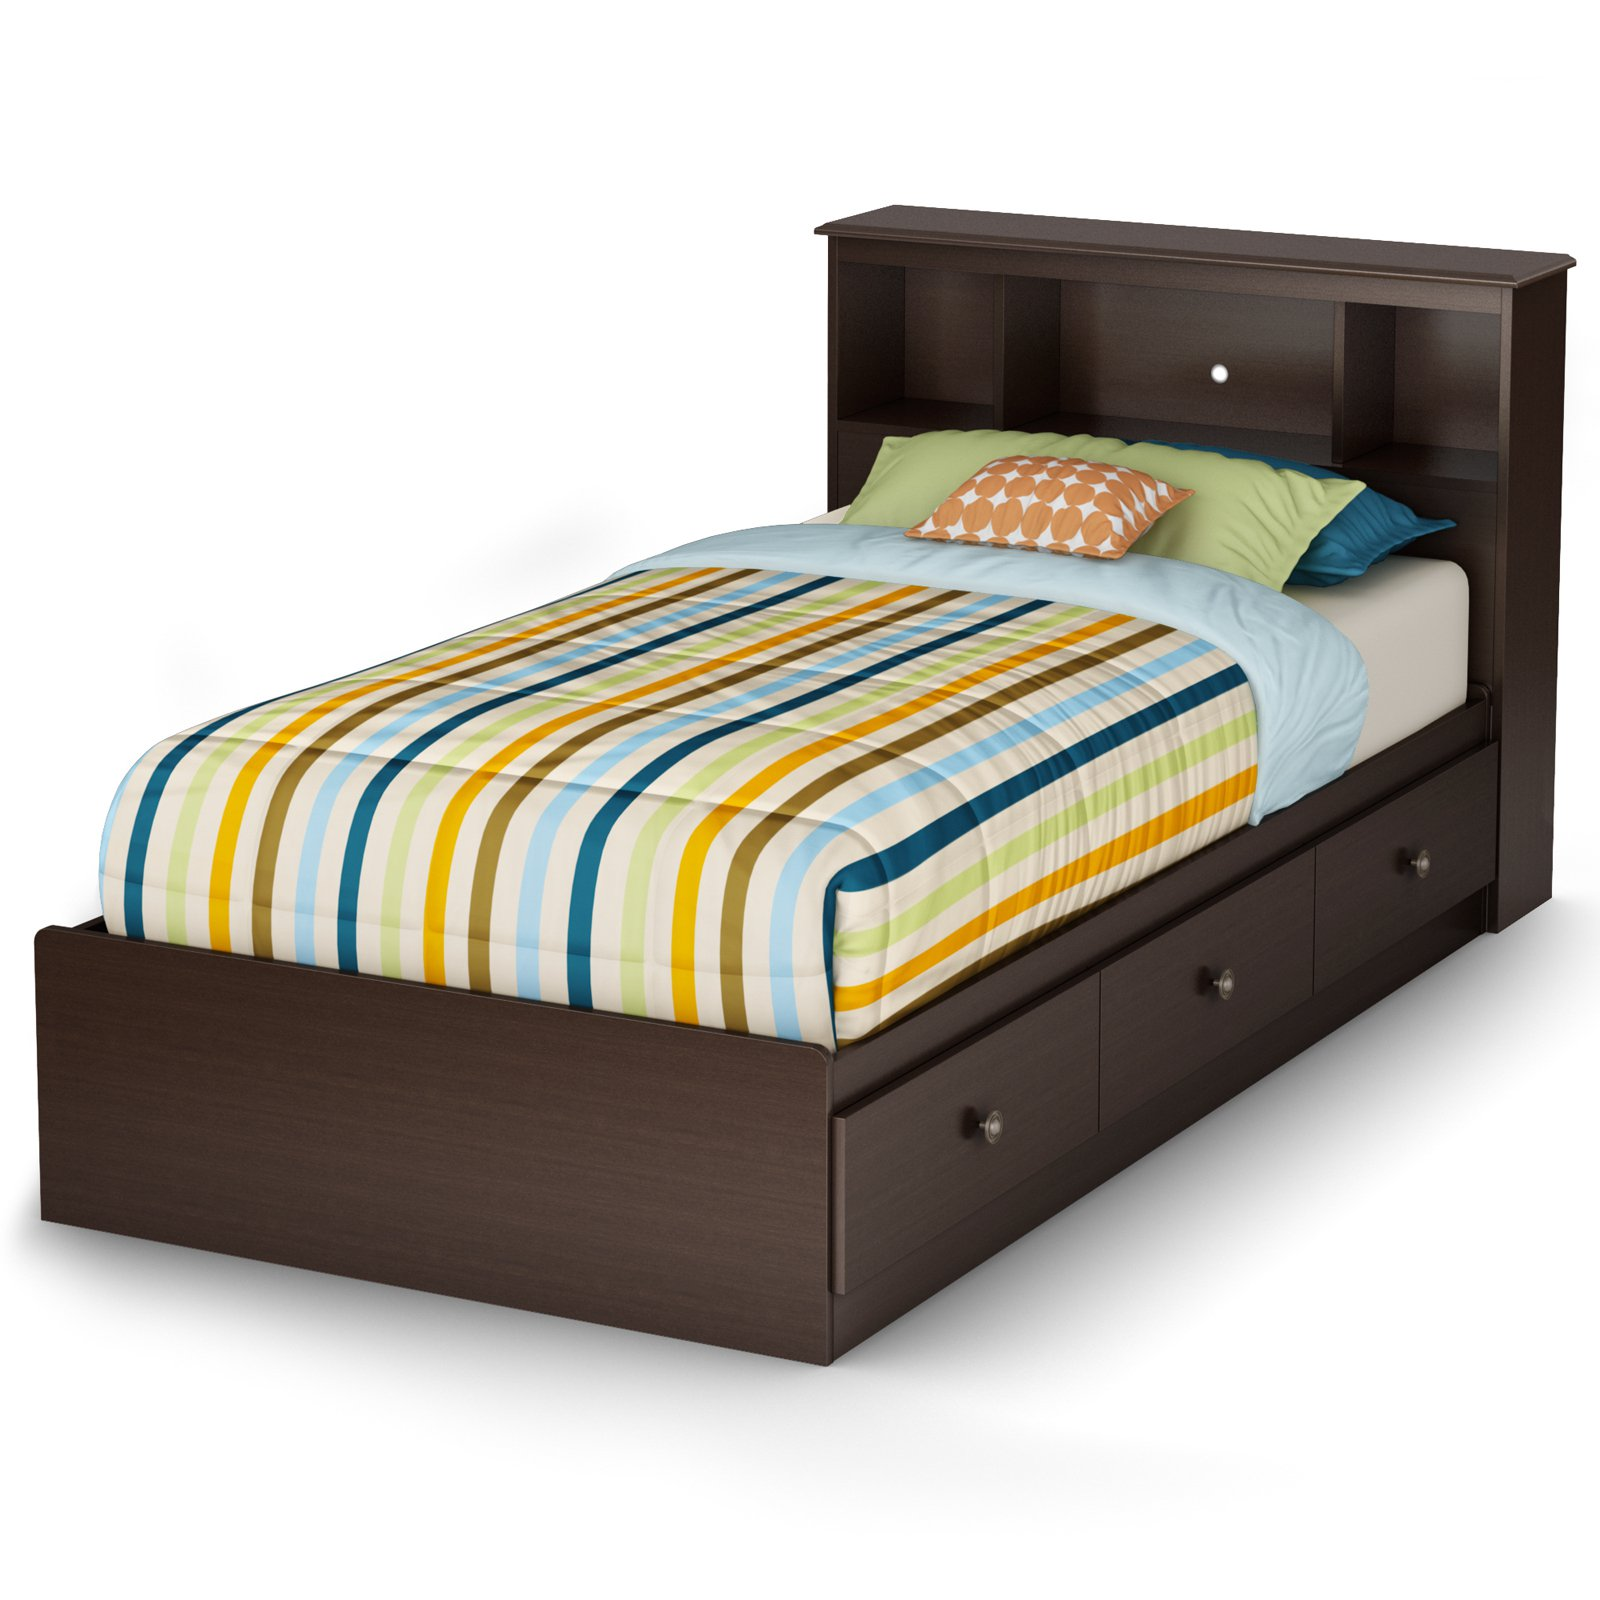 South Shore Zach Collection Twin Bookcase Bed - Chocolate